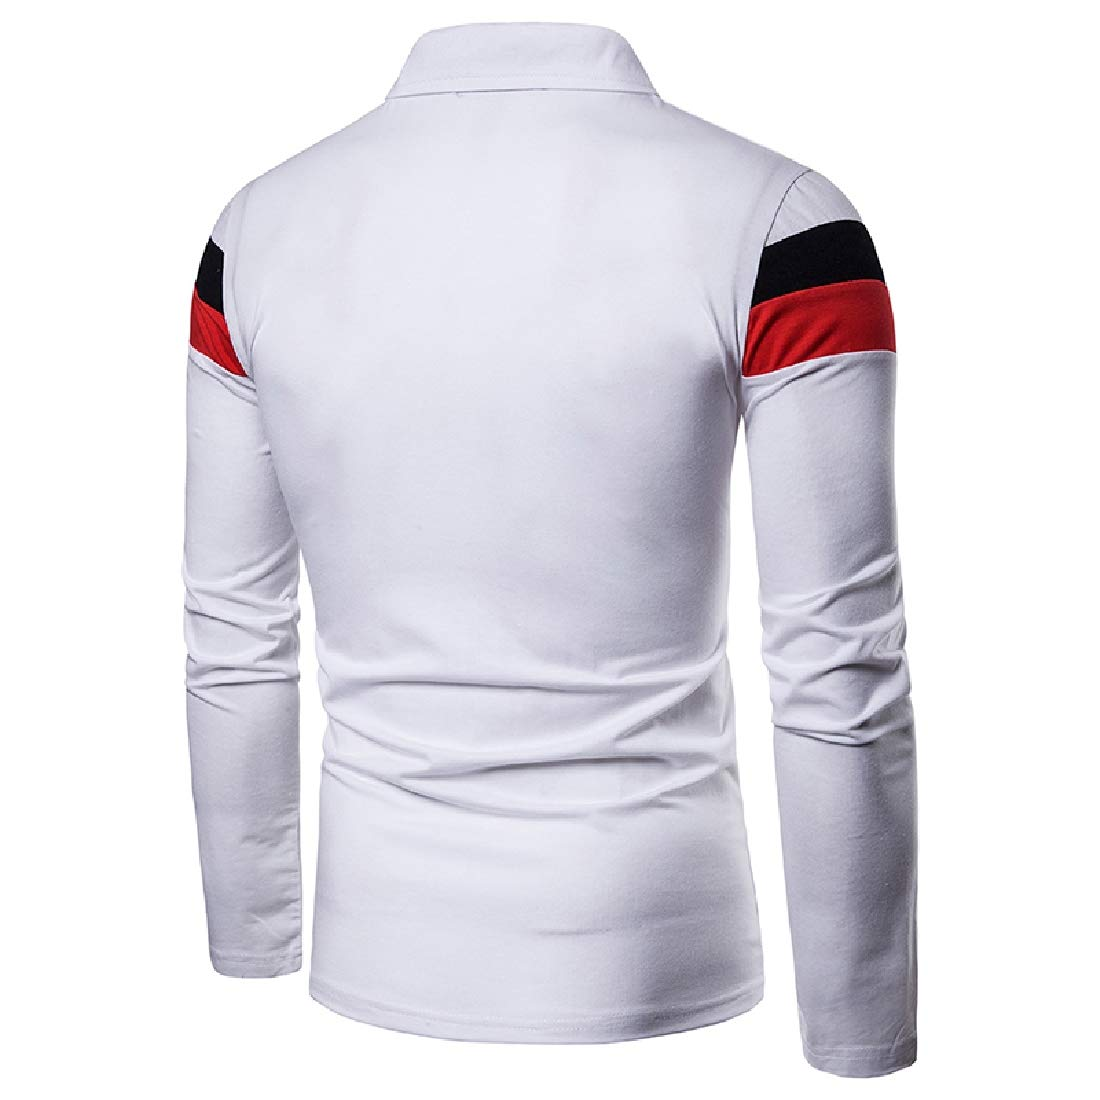 Zimaes-Men Pullover Long Sleeve Polo Lapel Collar Color Stitch Tees Top